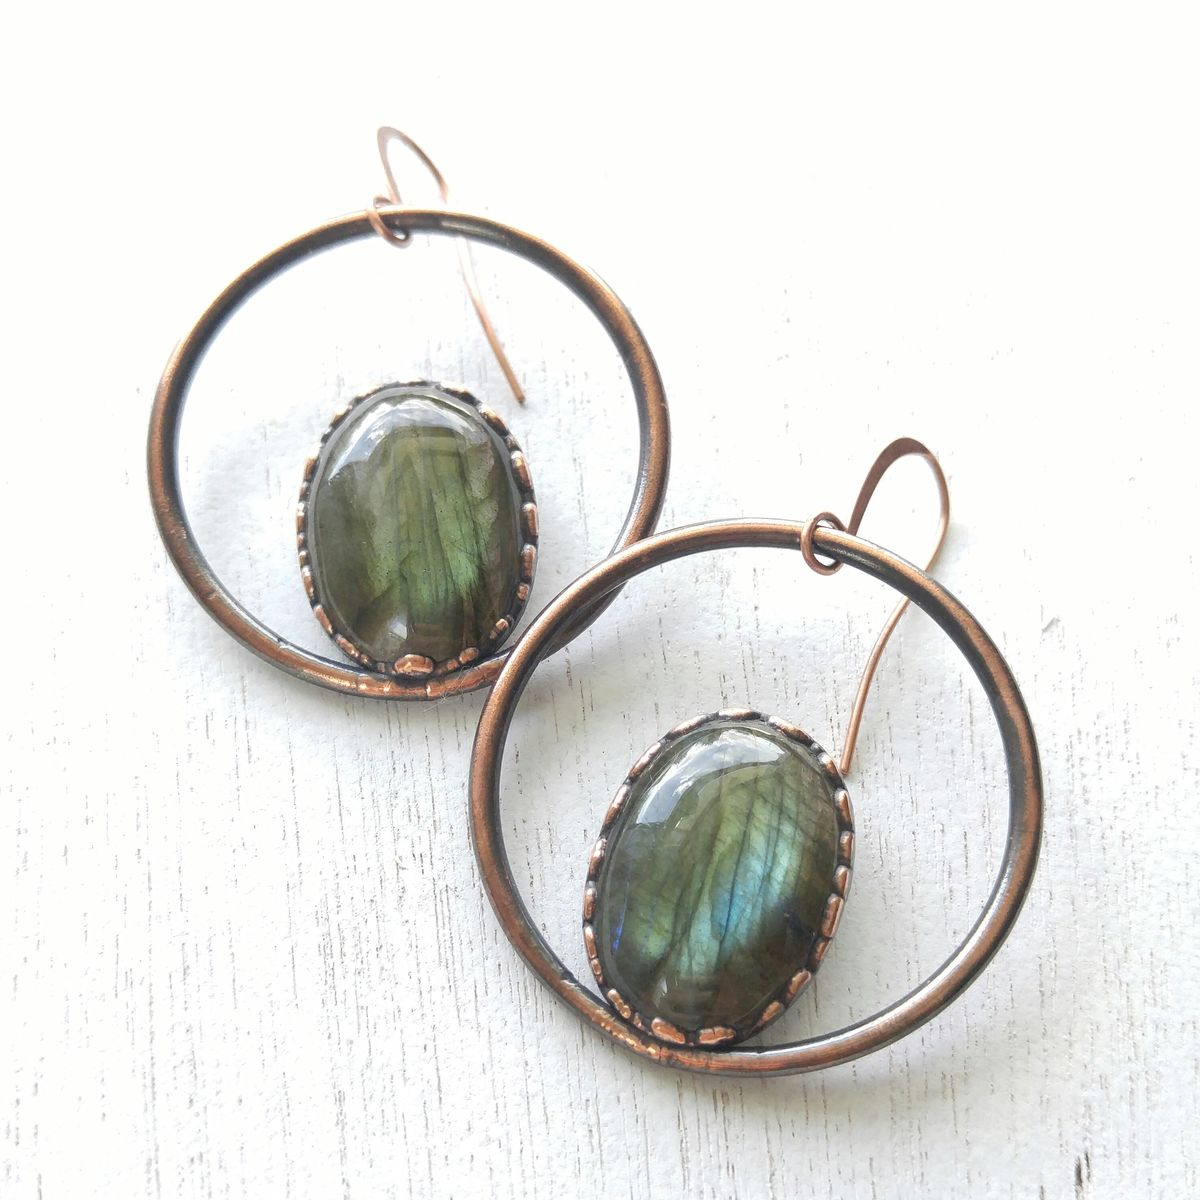 Labradorite Orb Earrings - product image